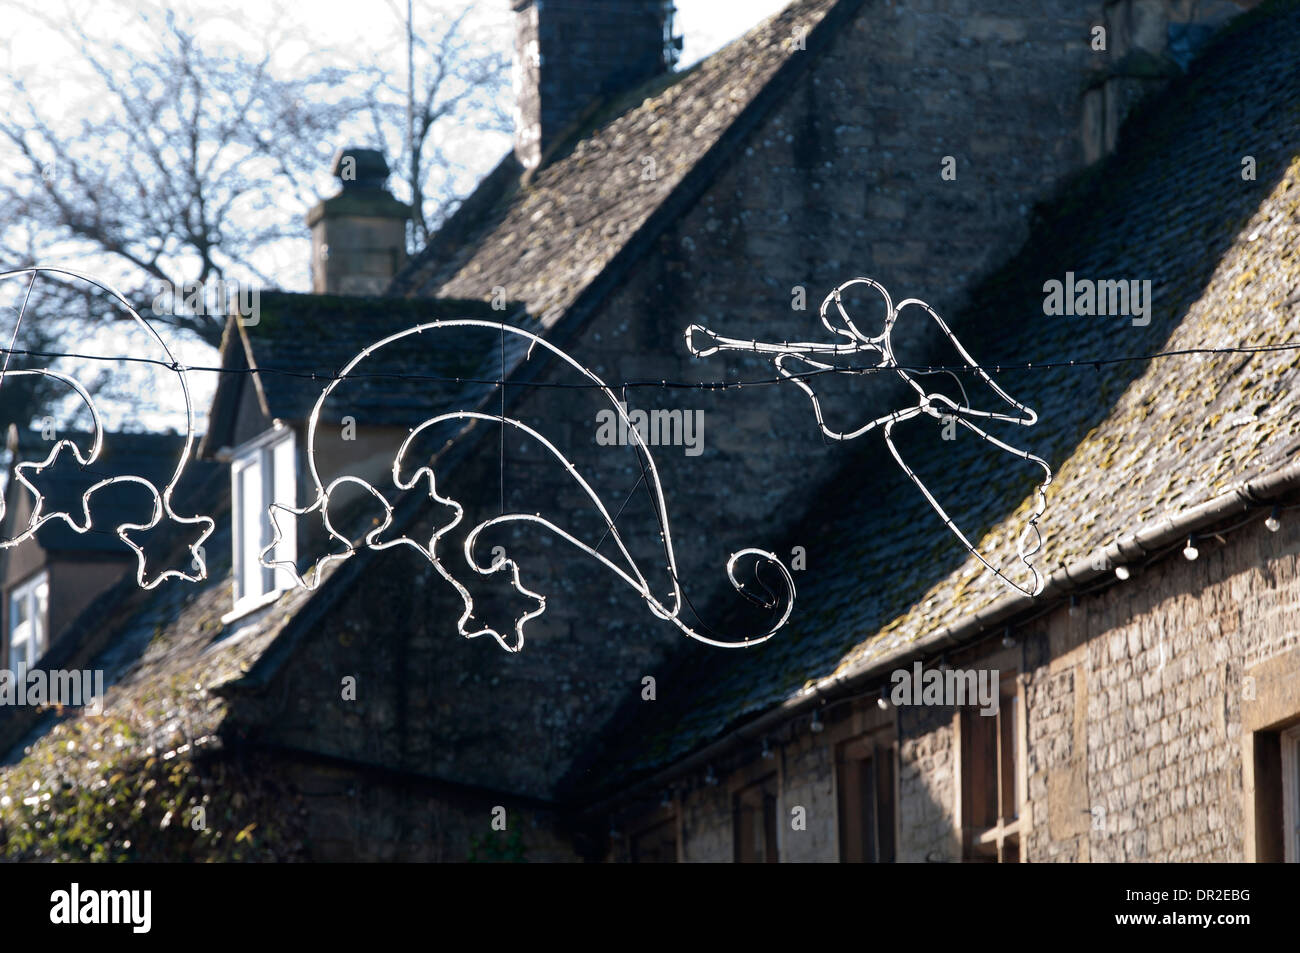 Christmas lights in daytime, Stow-on-the-Wold, Gloucestershire, UK - Stock Image